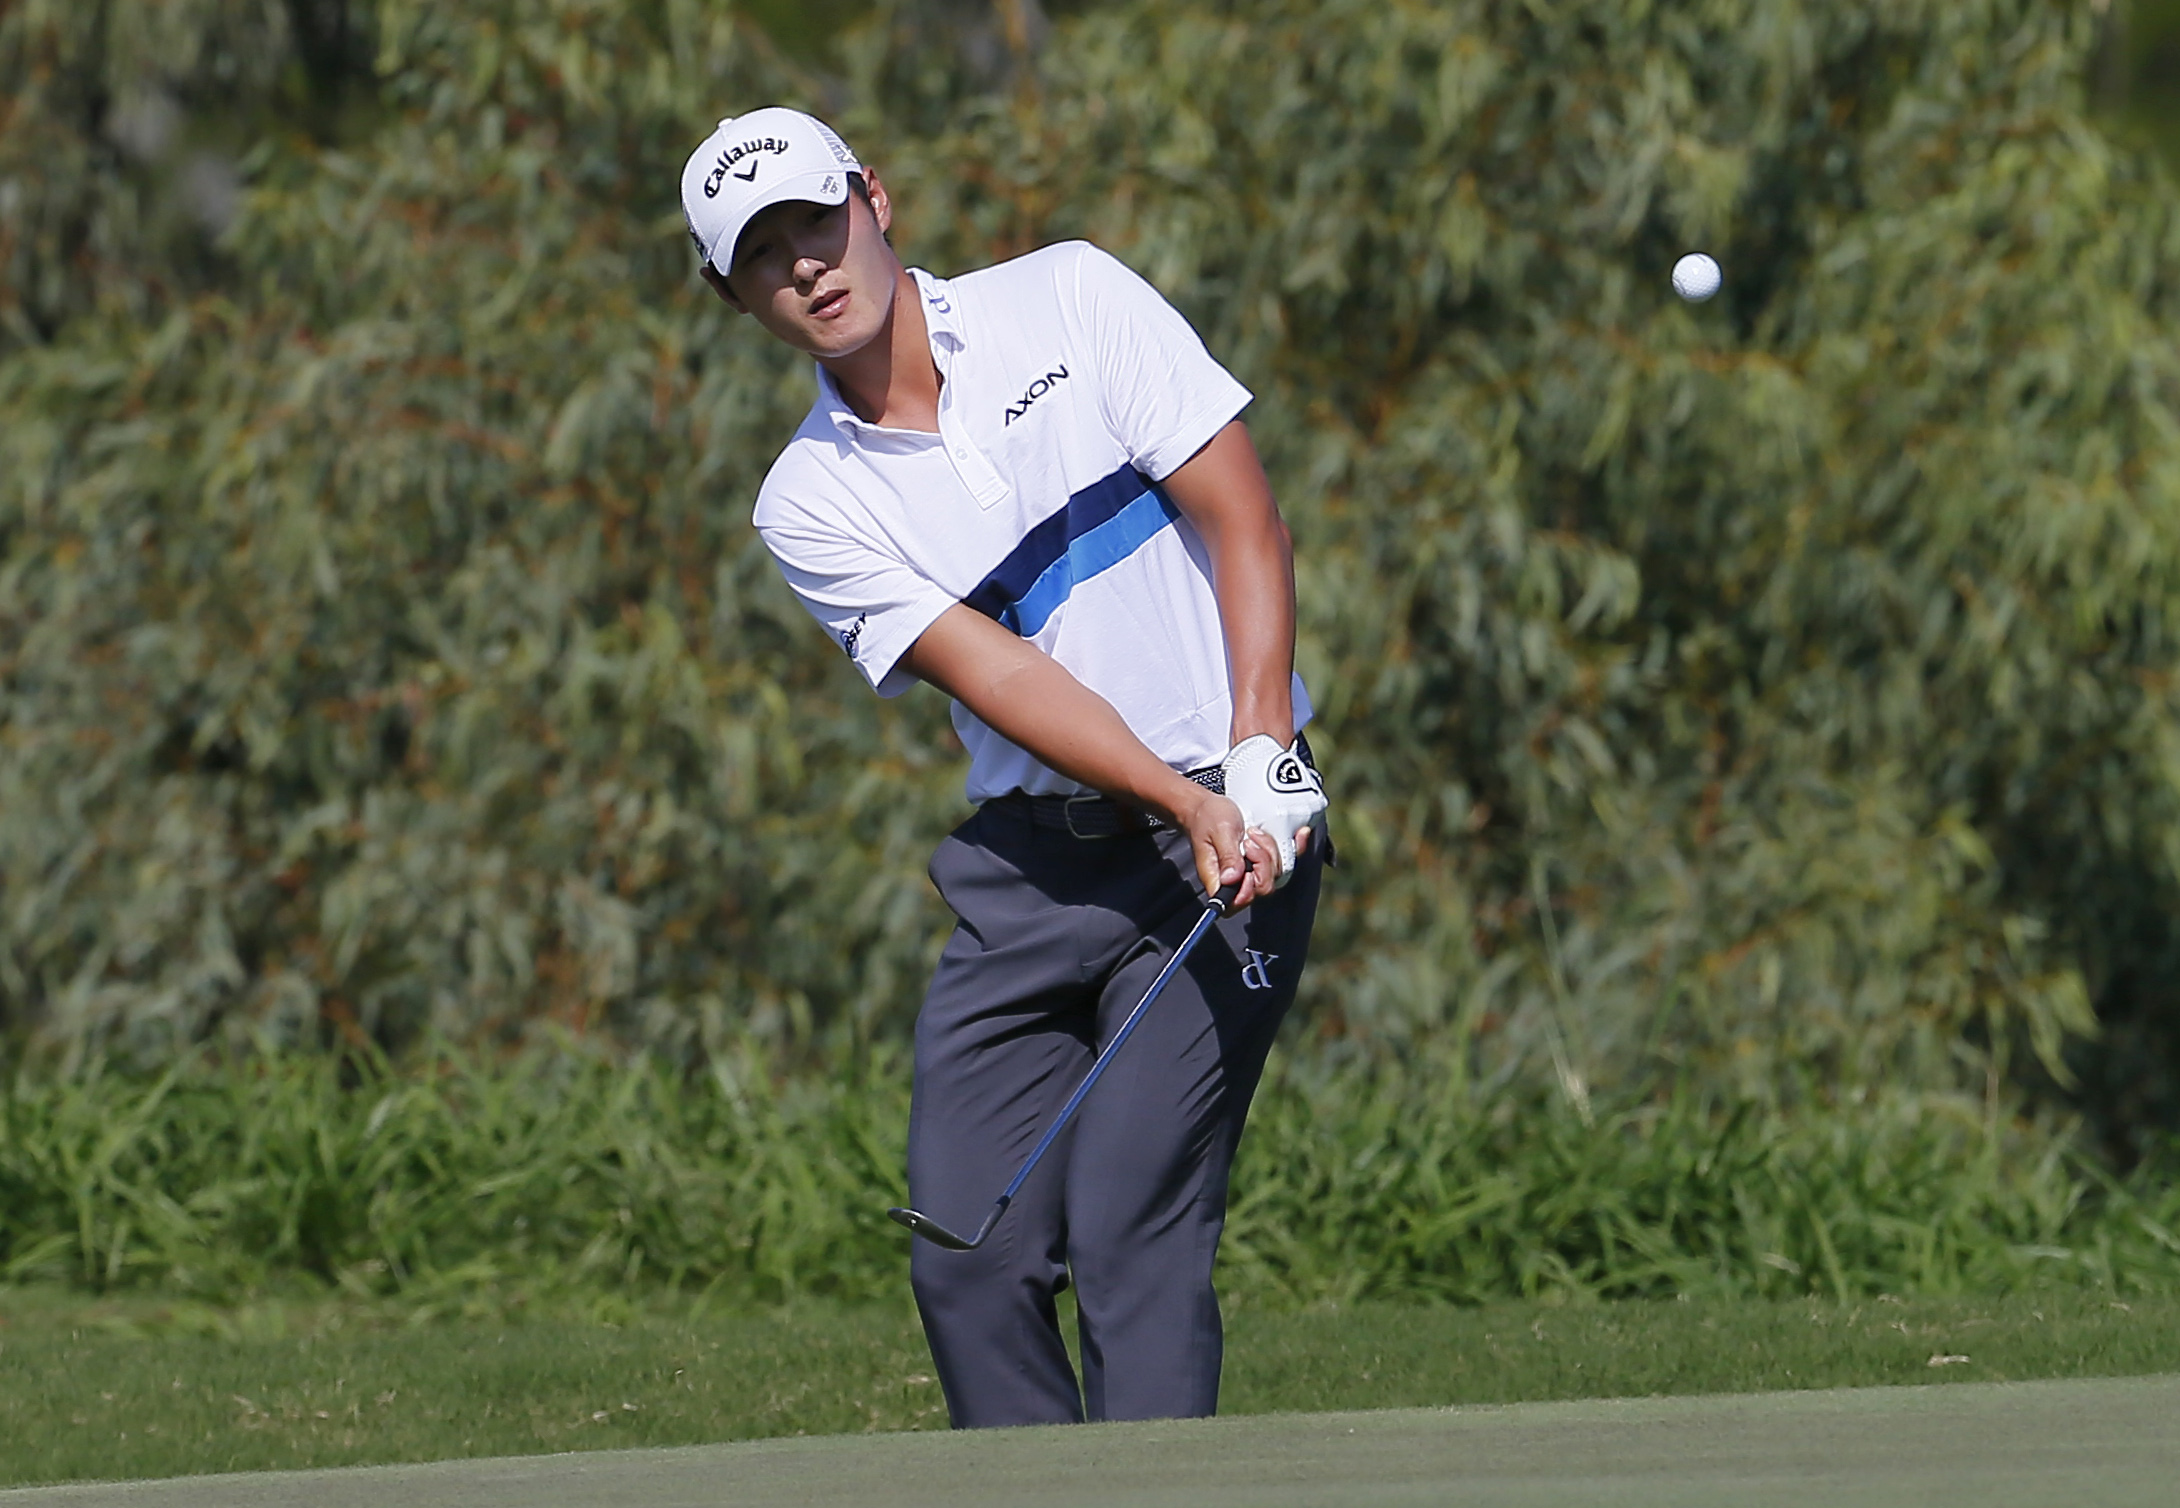 Danny Lee chips up onto the fourth green during the second round of the Tournament of Champions golf event Friday, Jan. 8, 2016, at Kapalua Plantation Course in Kapalua, Hawaii.